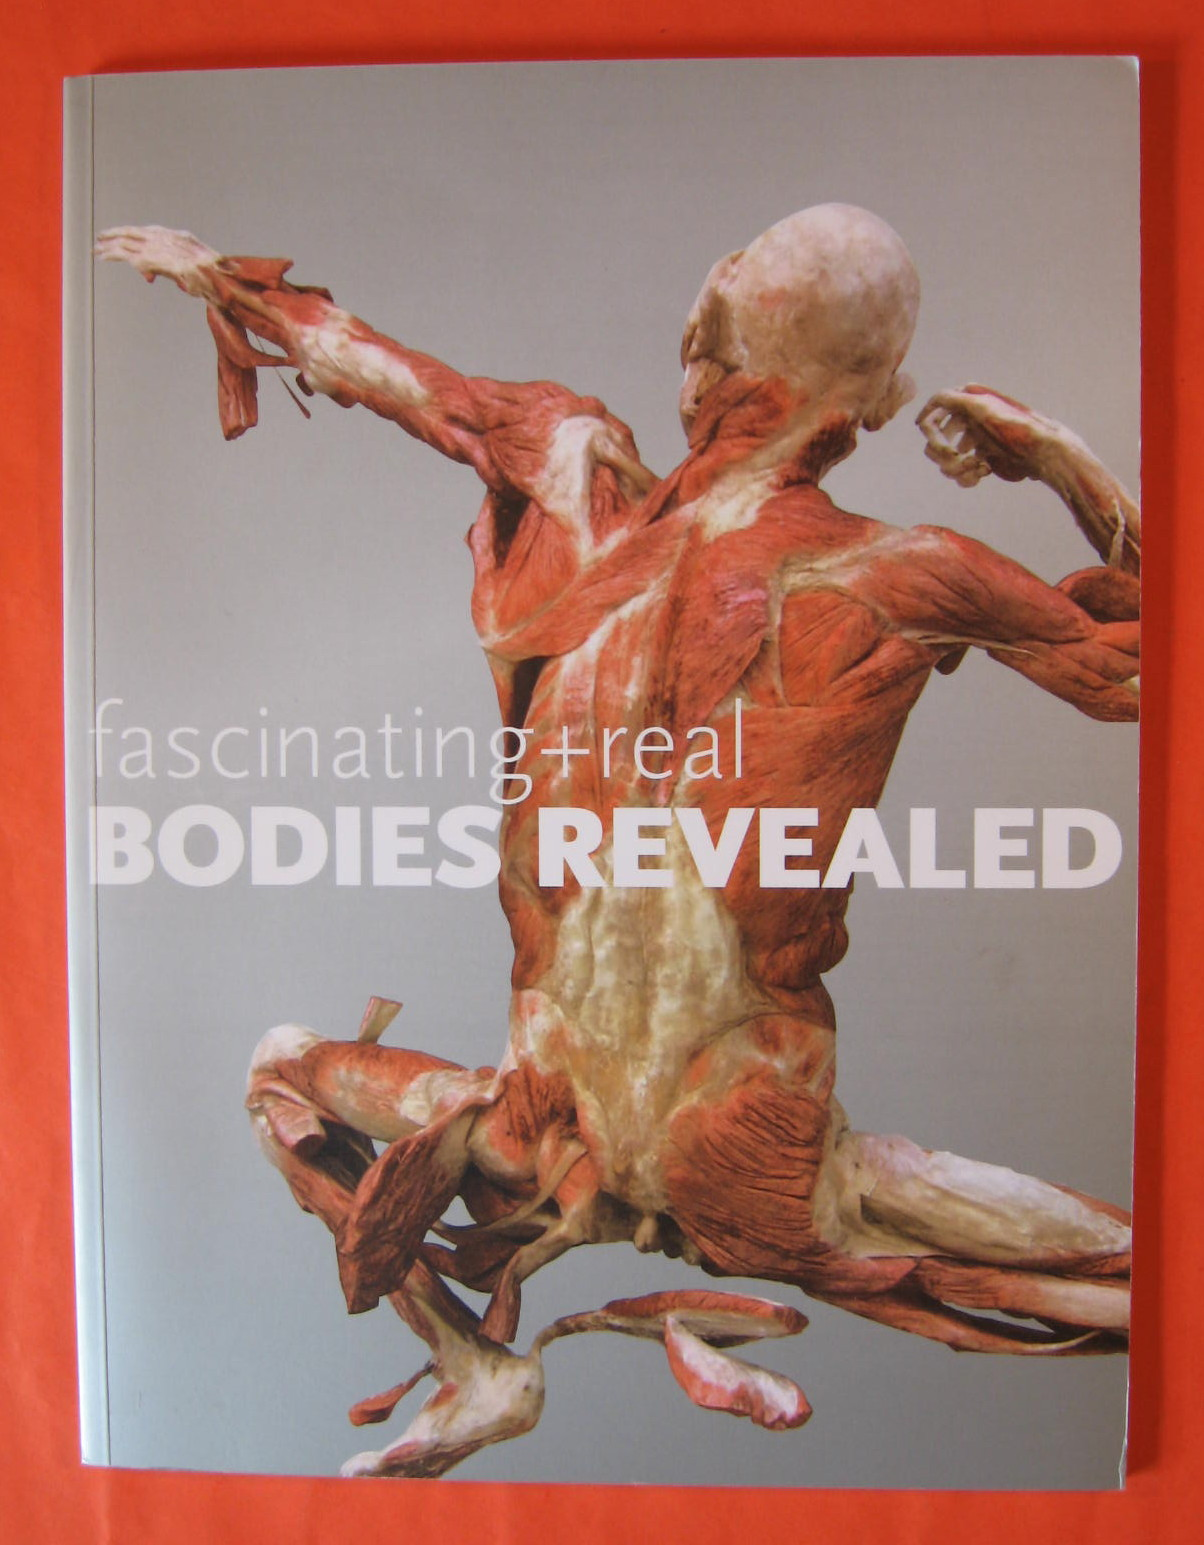 Fascinating + Real Bodies Revealed, Geller, Judith B. (ed.)